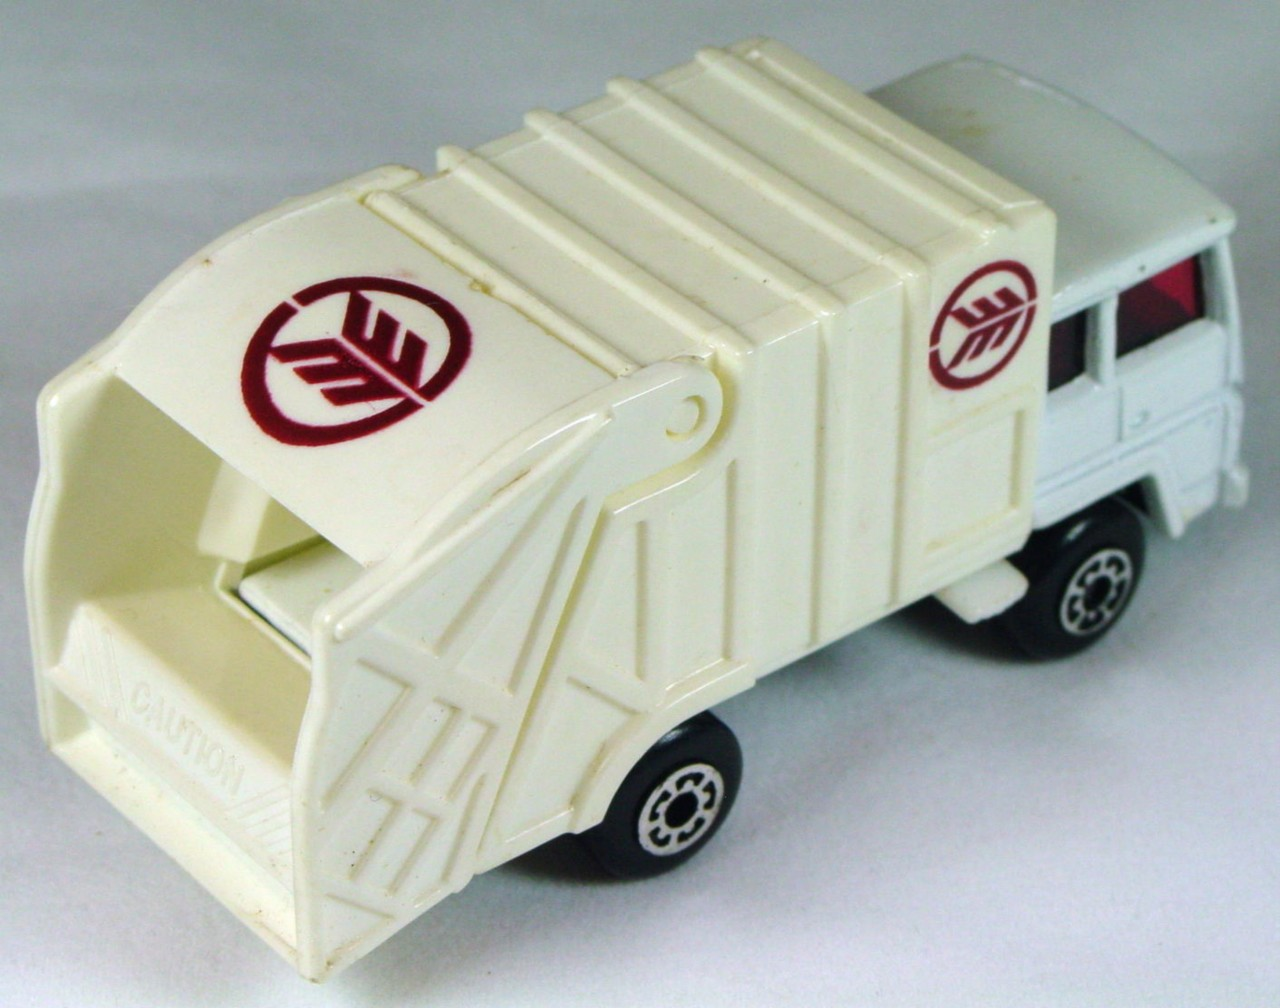 ASAP-CCI 36 D 30 - Refuse Truck White black base maroon design tampo made in China ASAP